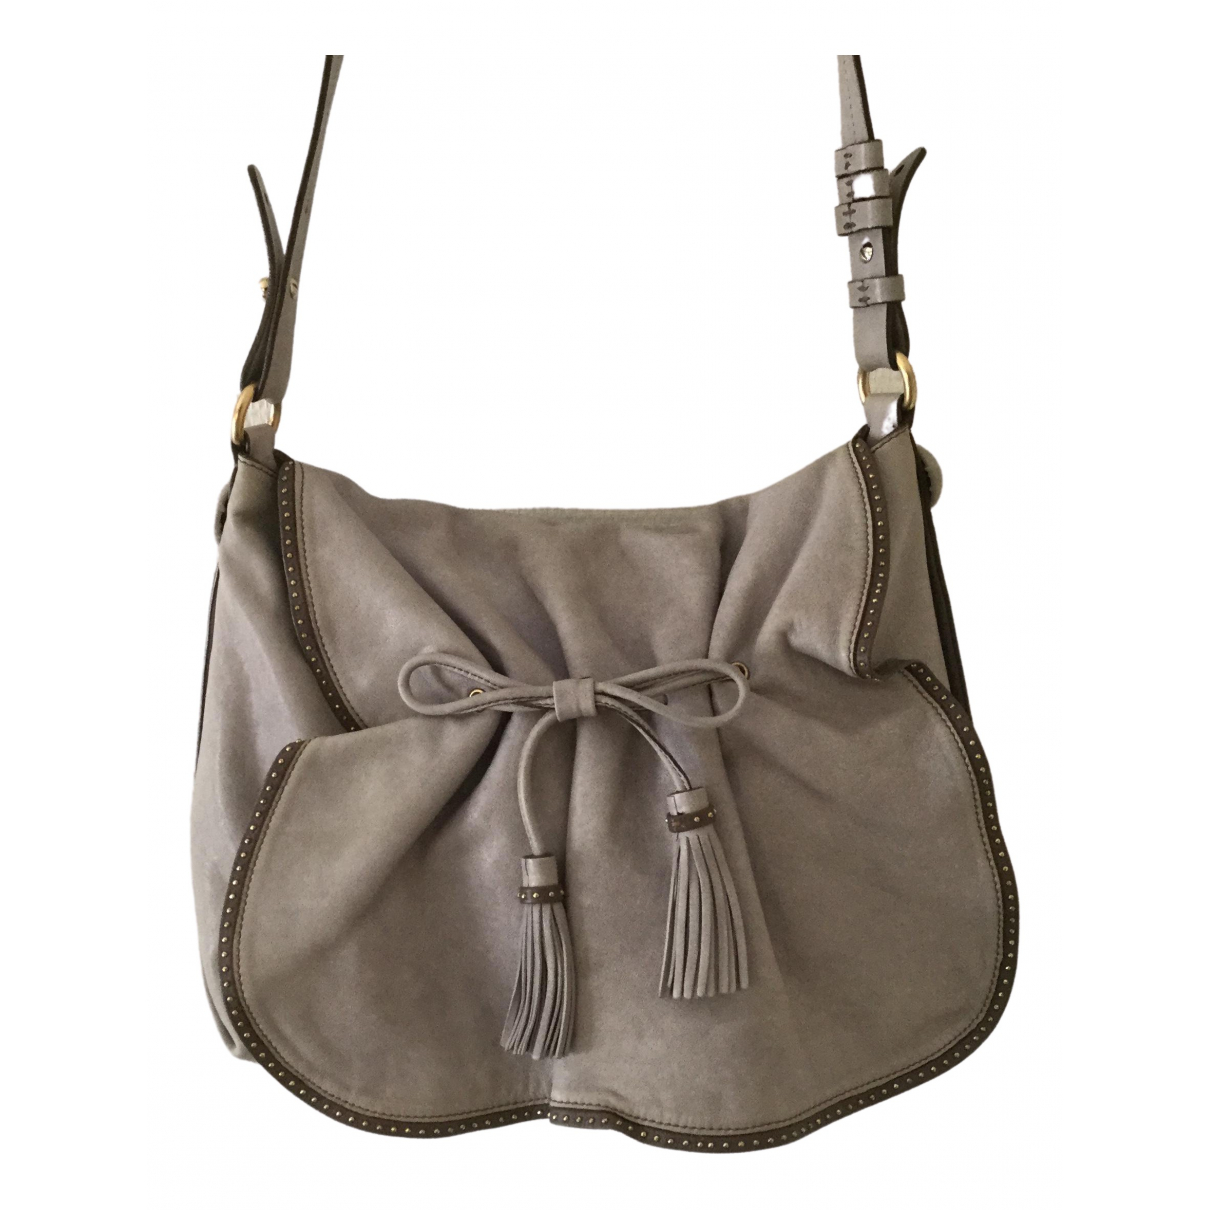 Emporio Armani \N Beige Leather handbag for Women \N